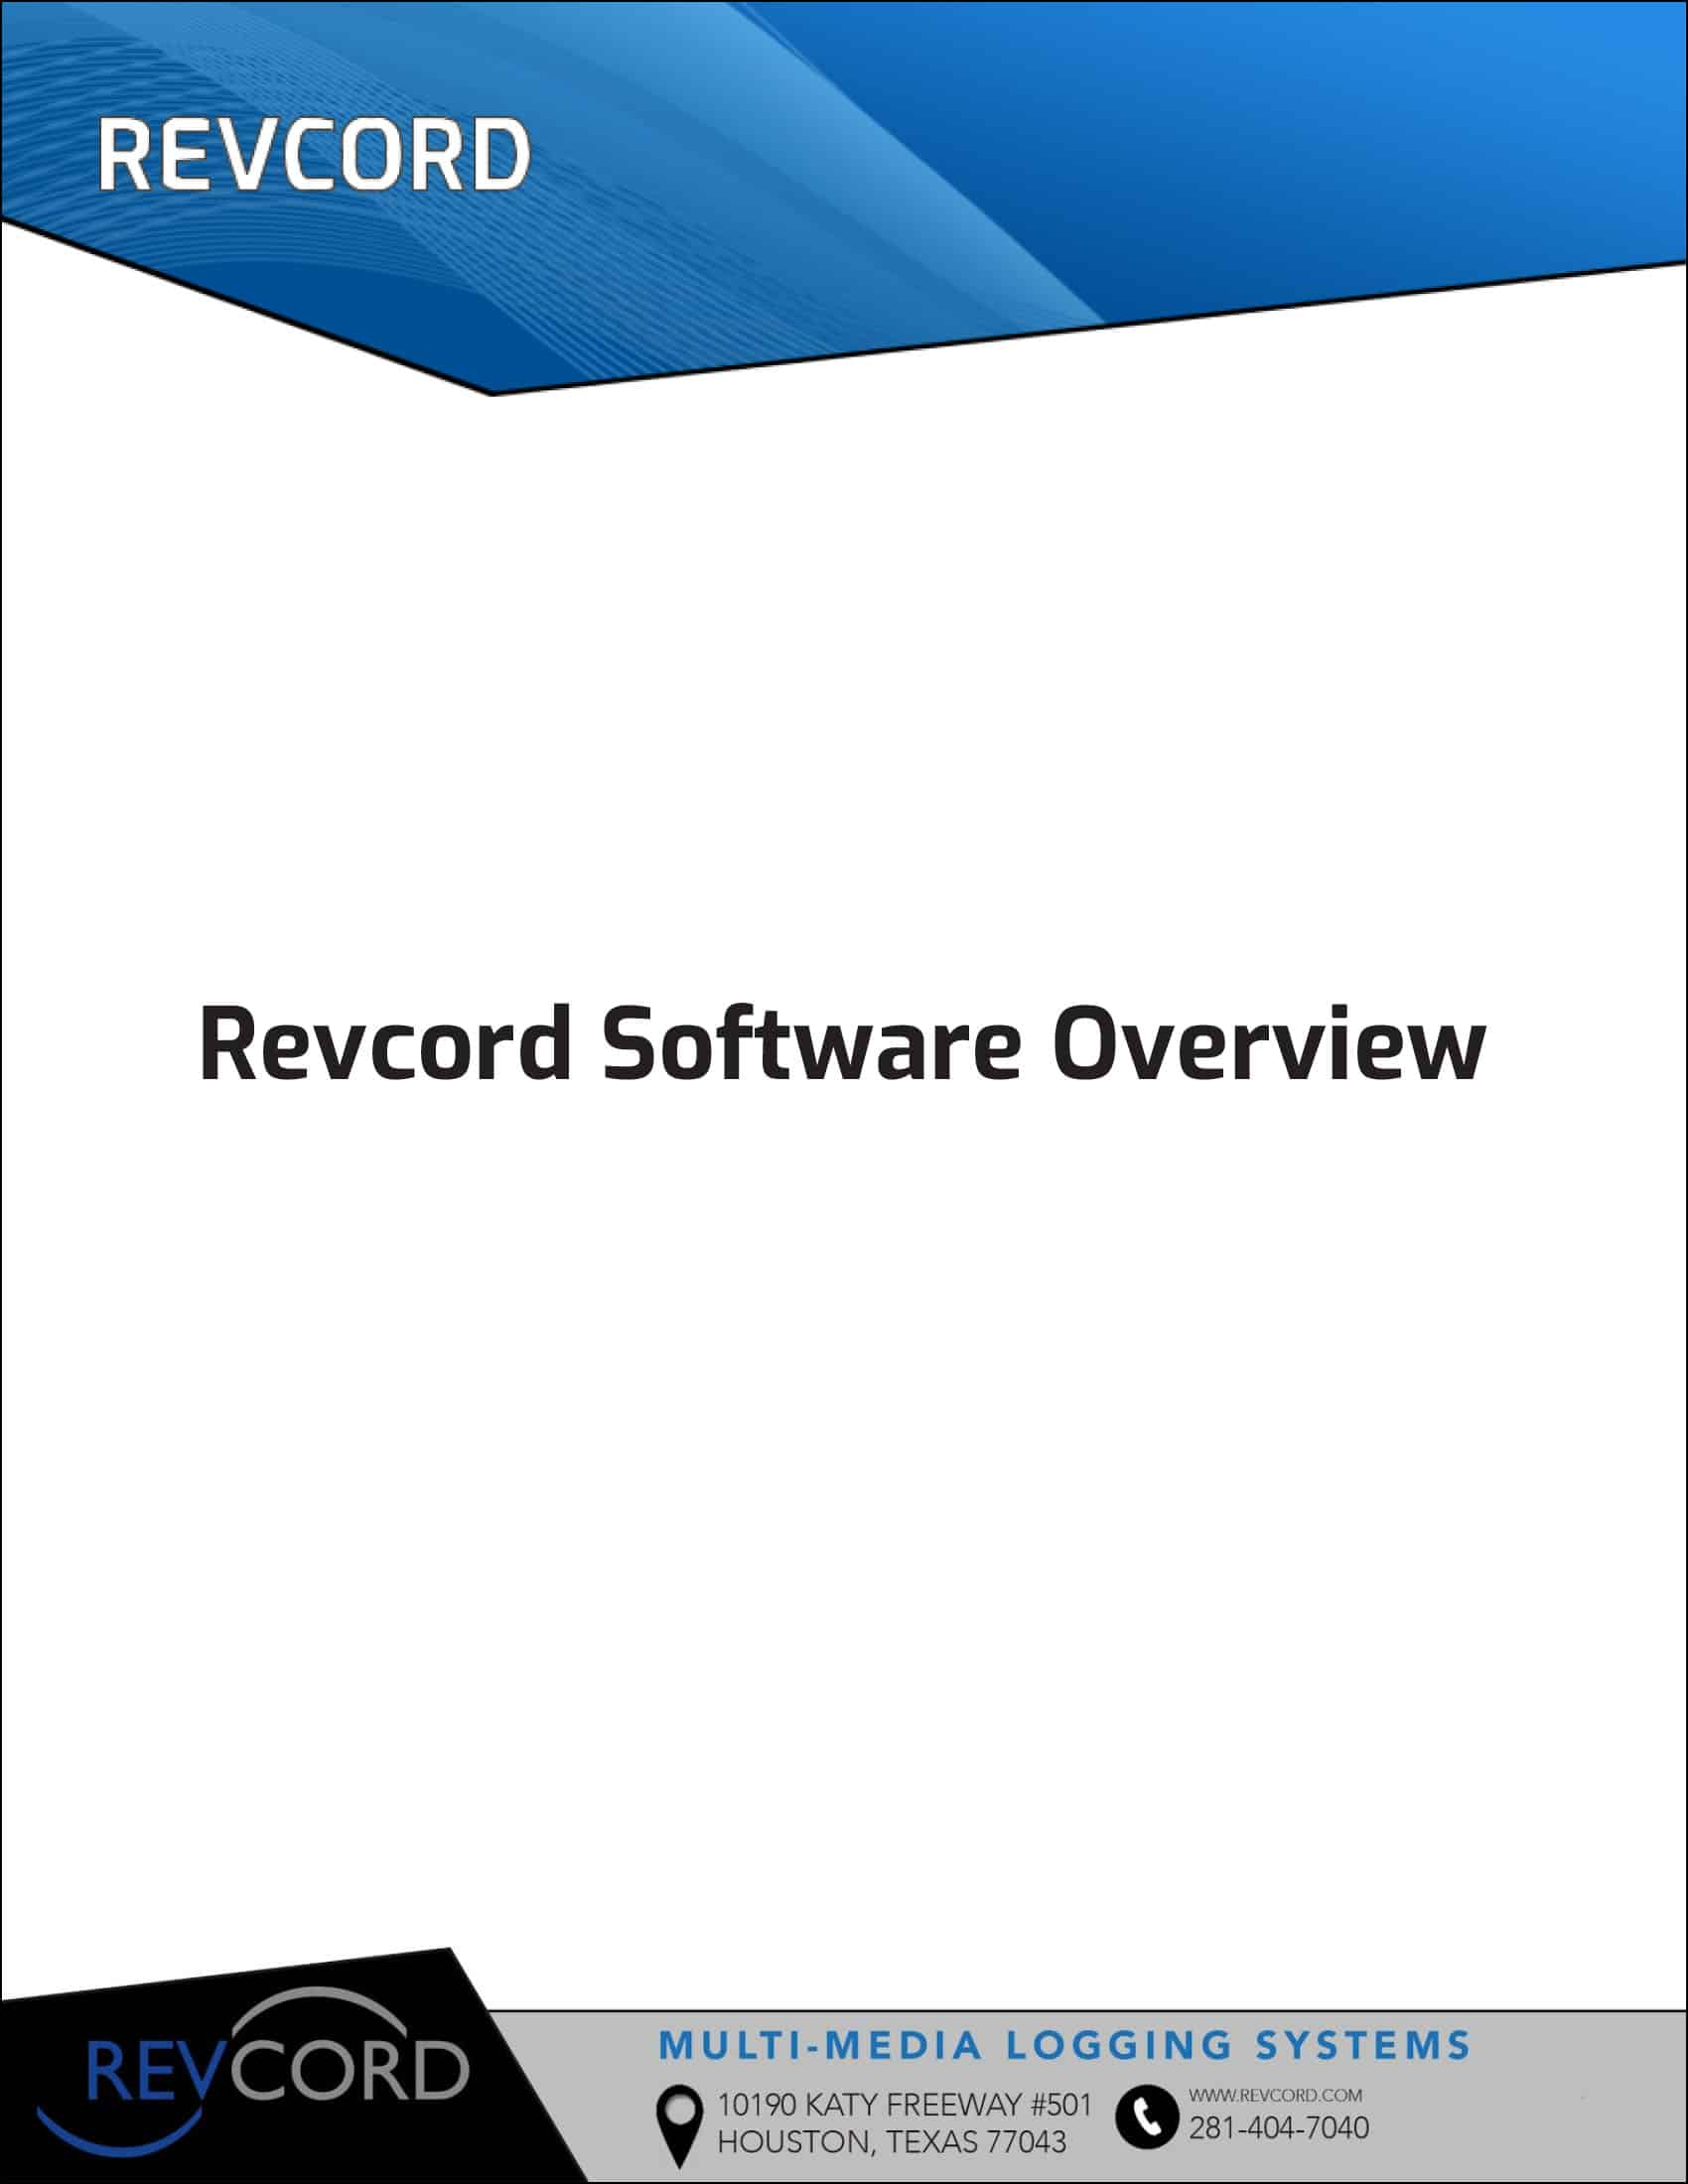 Revcord Overview